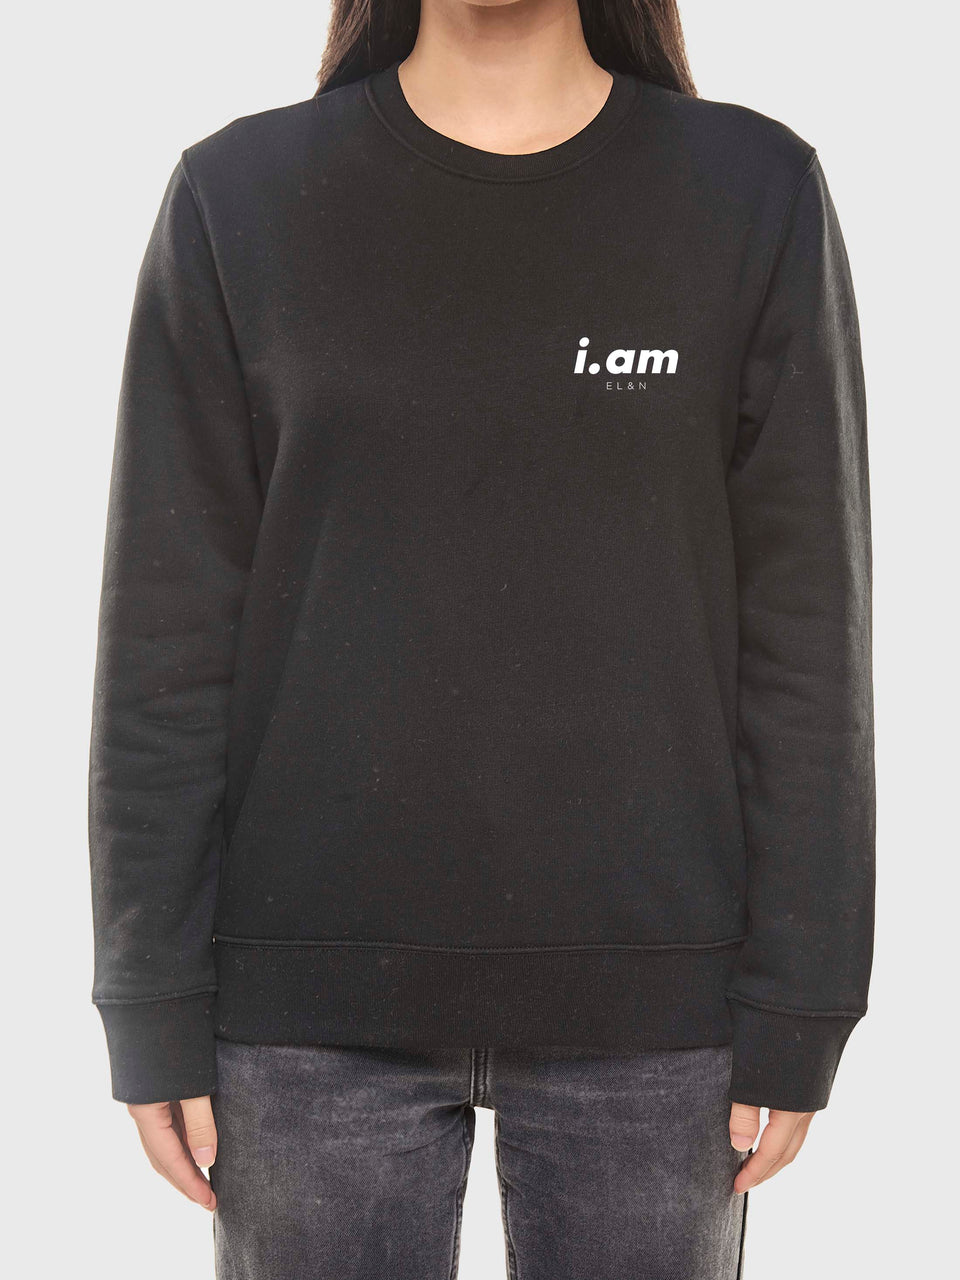 Showing not telling - Black - Unisex sweatshirt